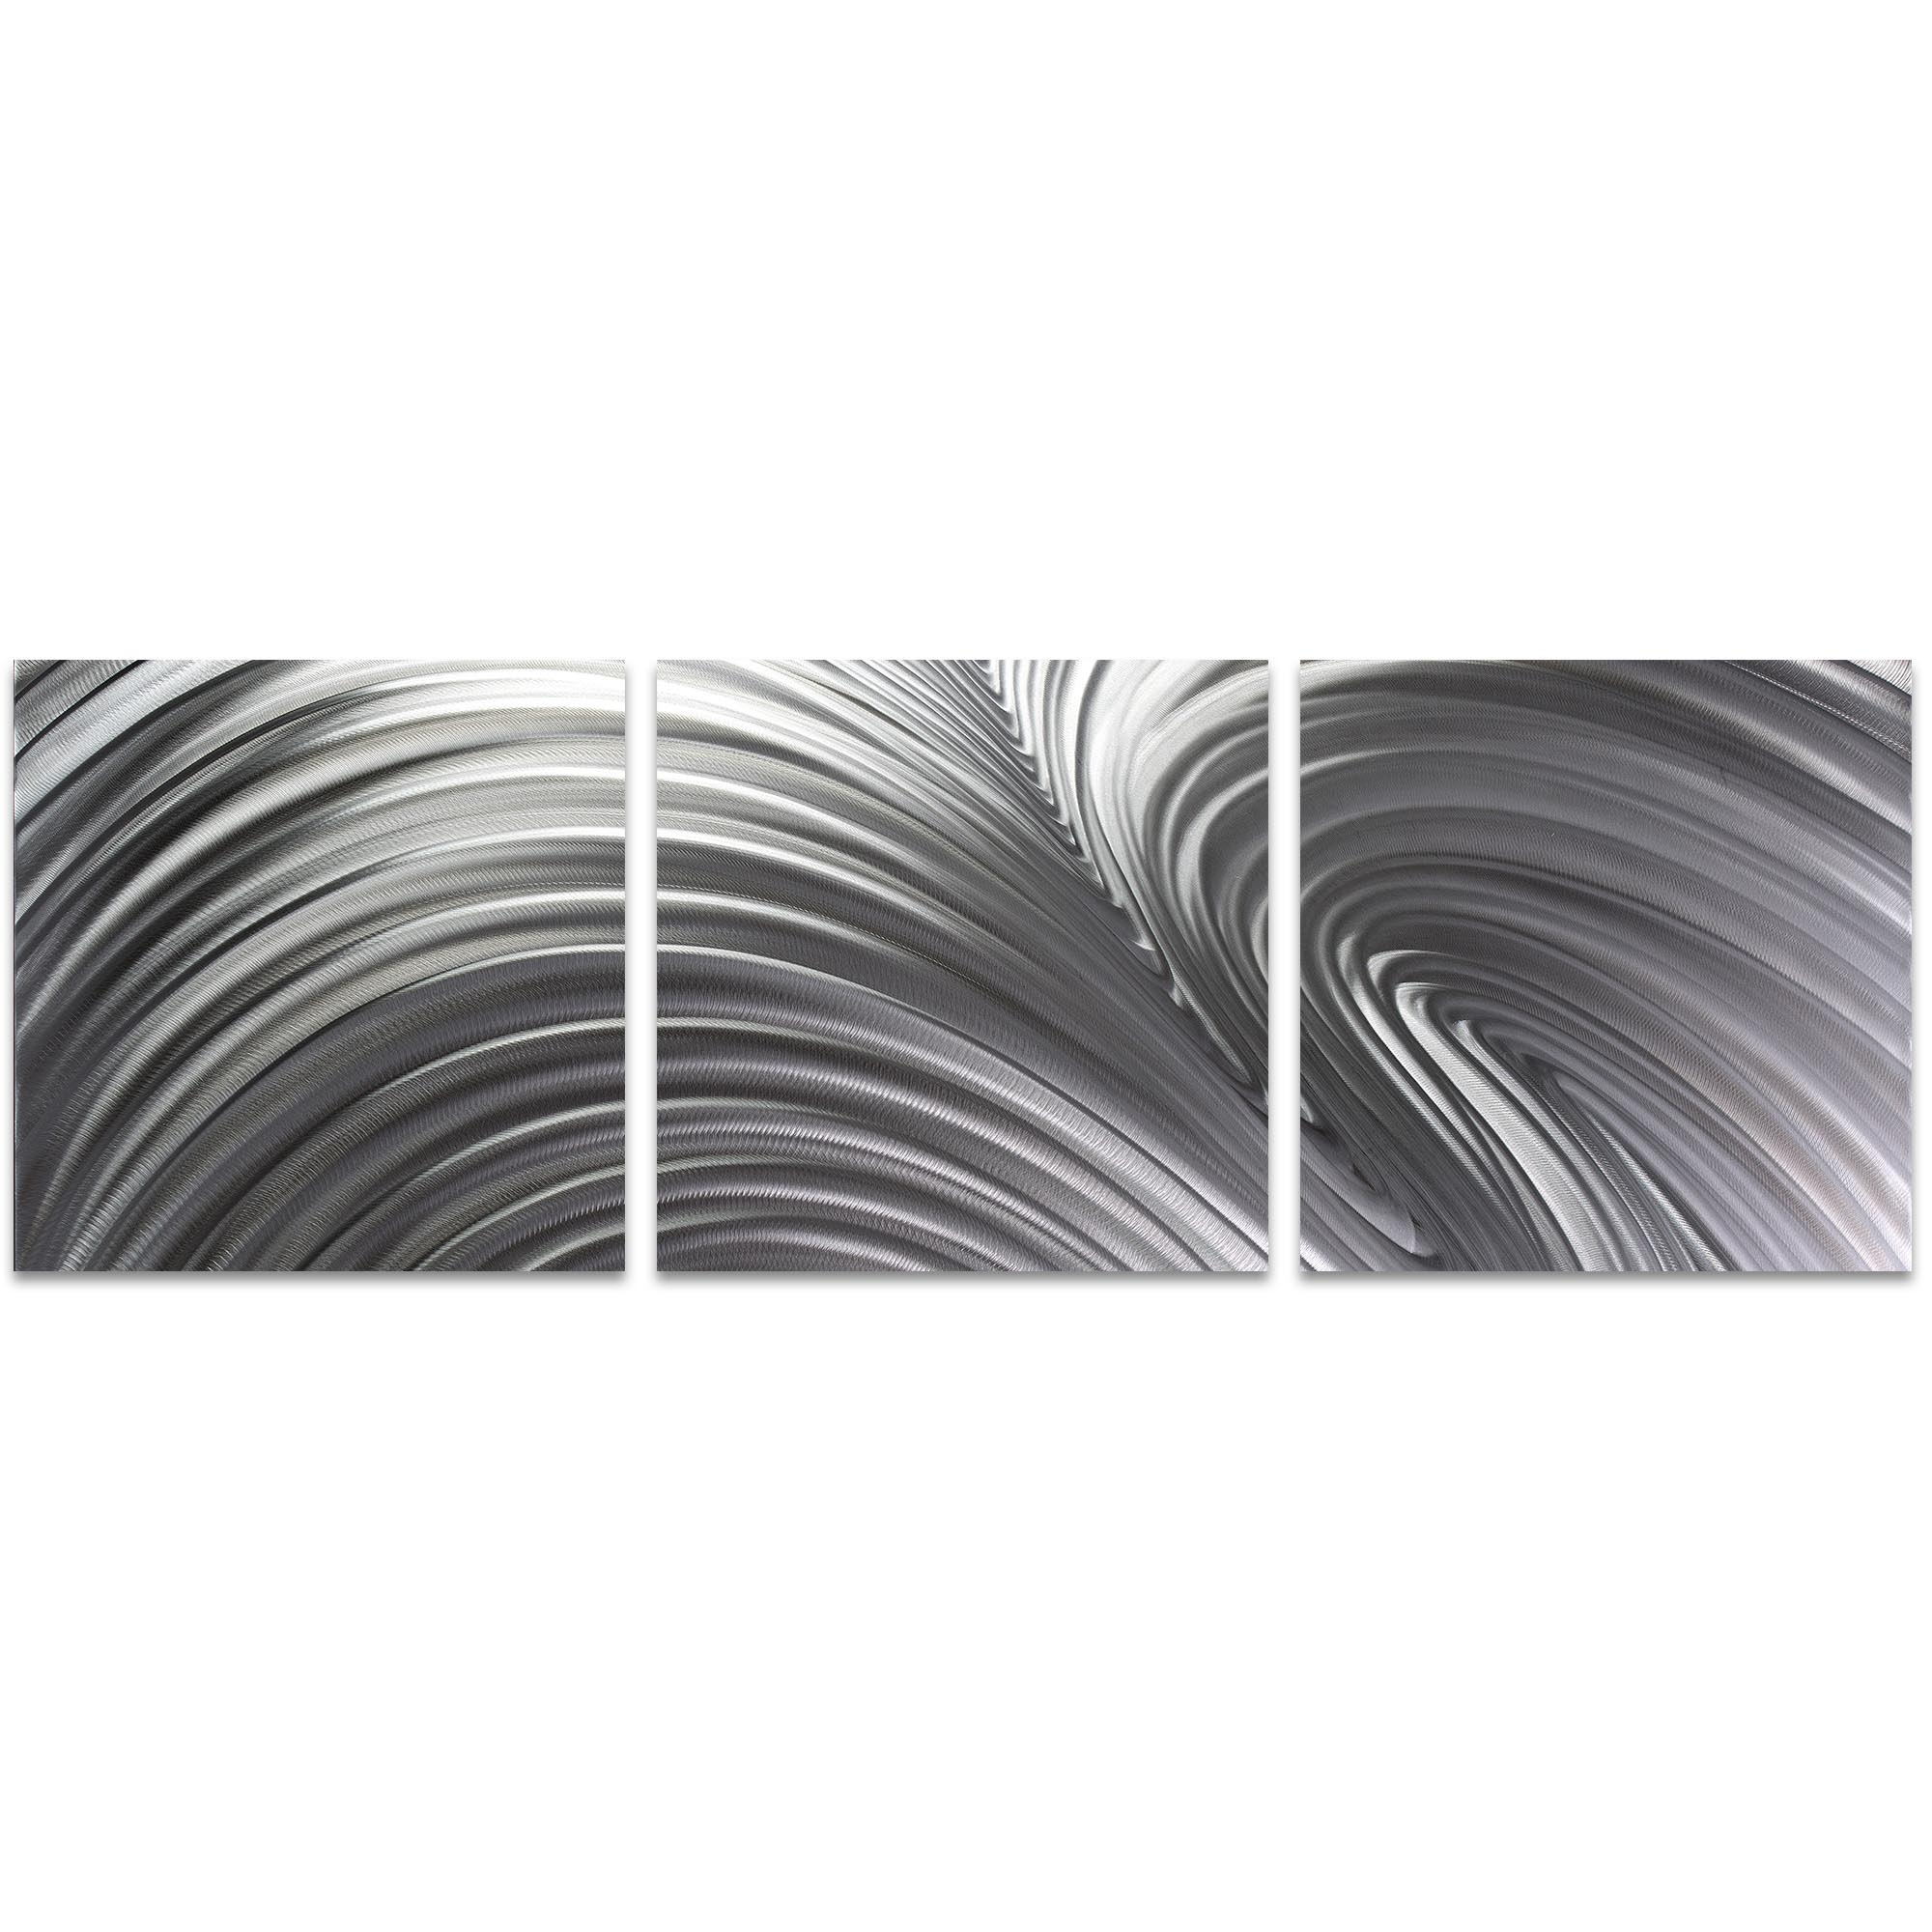 Fusion Triptych 38x12in. Metal or Acrylic Contemporary Decor